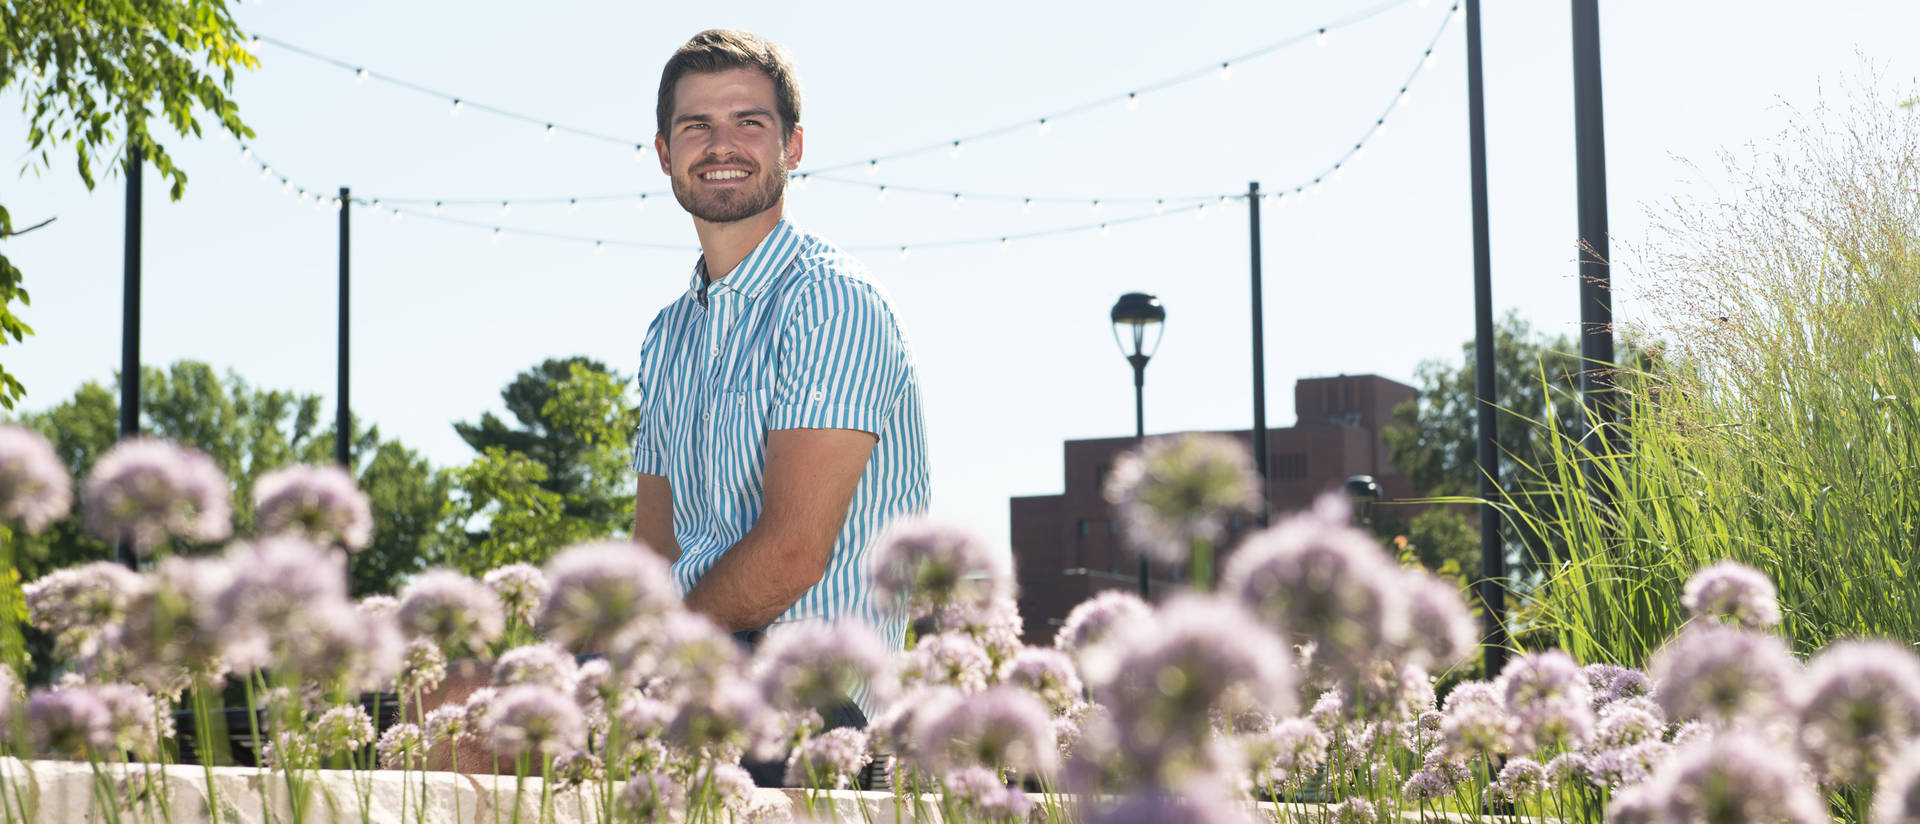 Alex Hintz worked throughout his college years to become more culturally competent and to understand his white privilege. He's eager to share what he's learned with his future students.